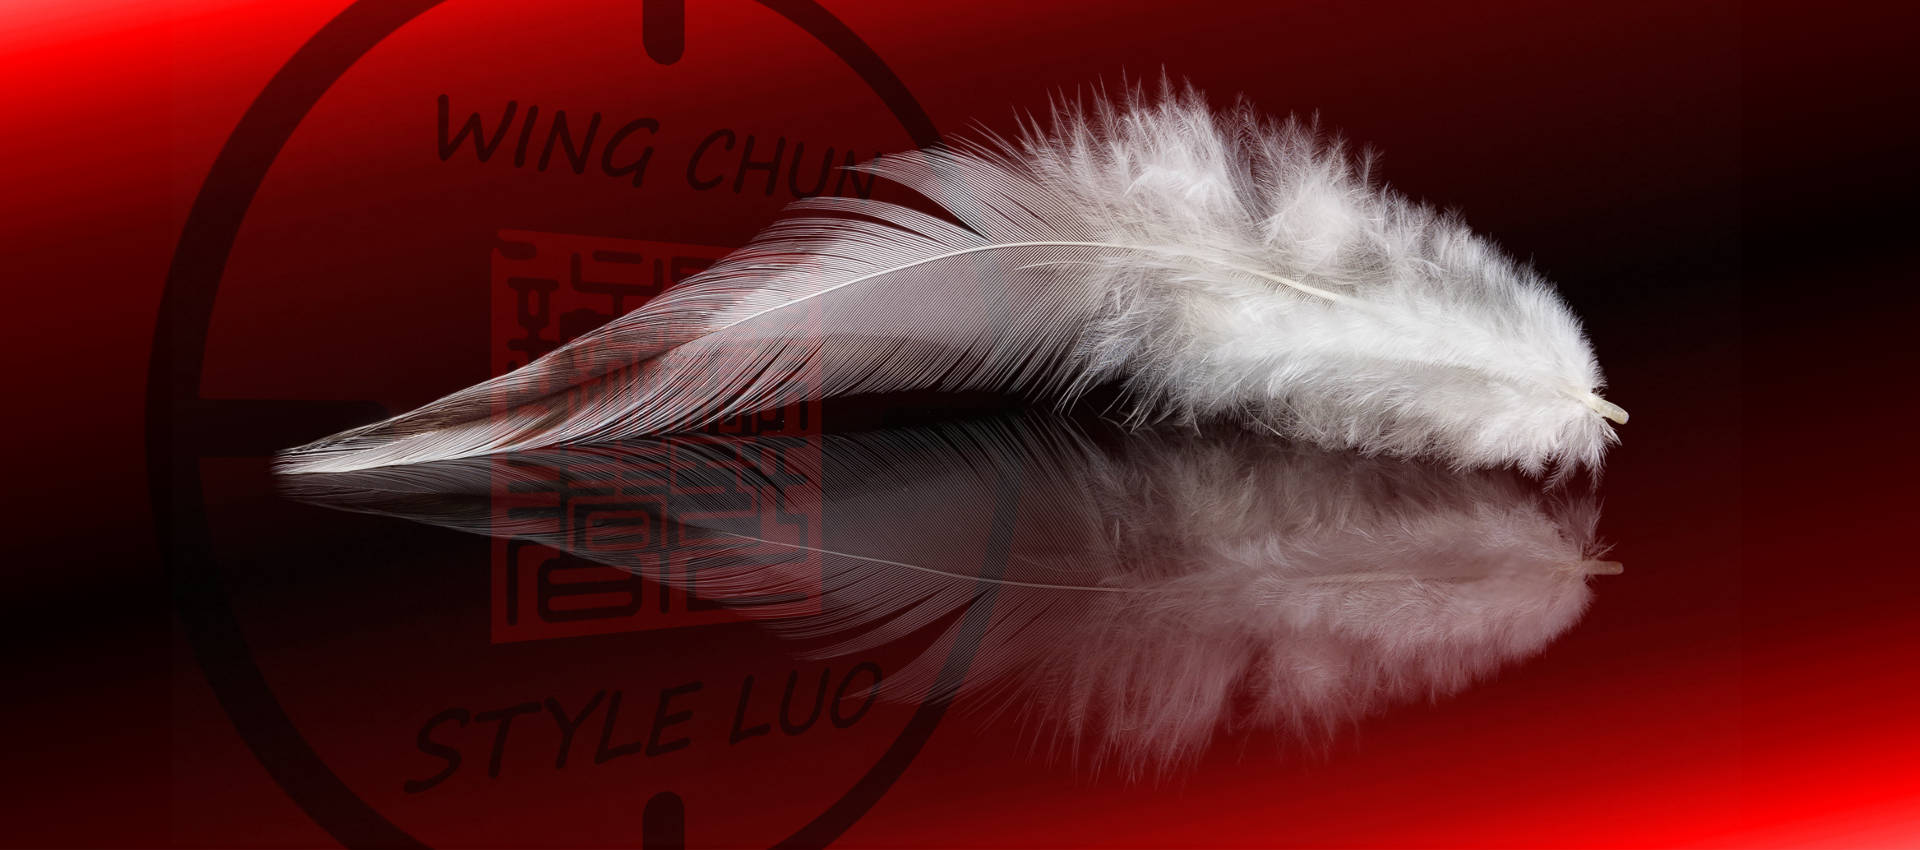 Wallpaper Wing Chun Luo - Feather